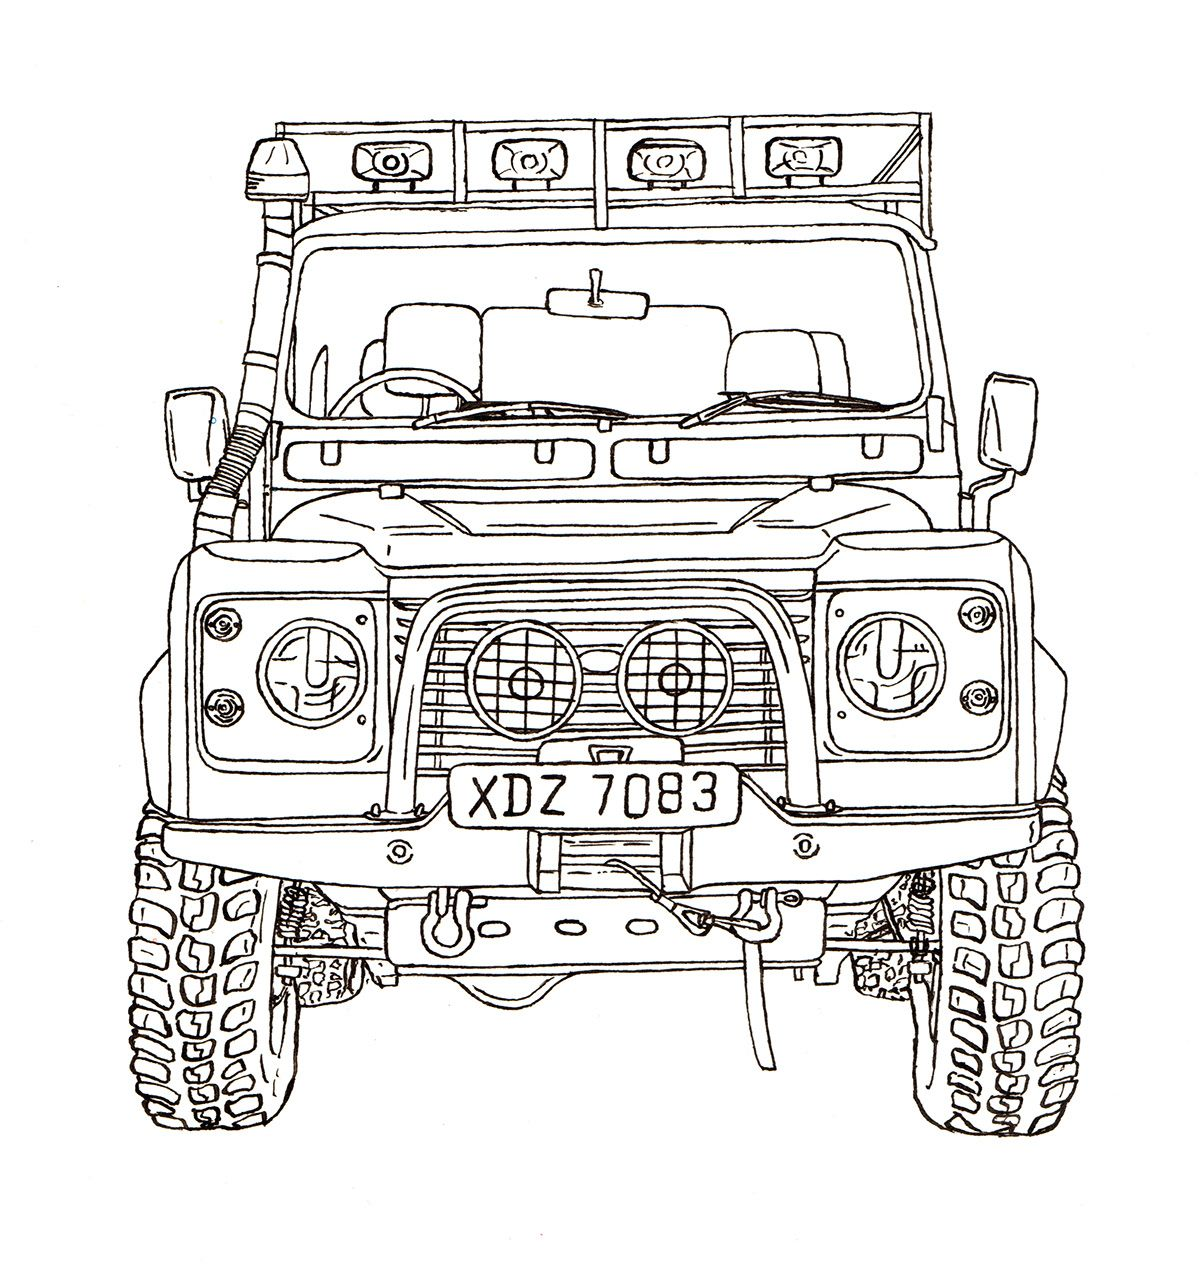 Land Rover Illustrations On Behance Land Rover Land Rover Defender Land Rover Defender 110